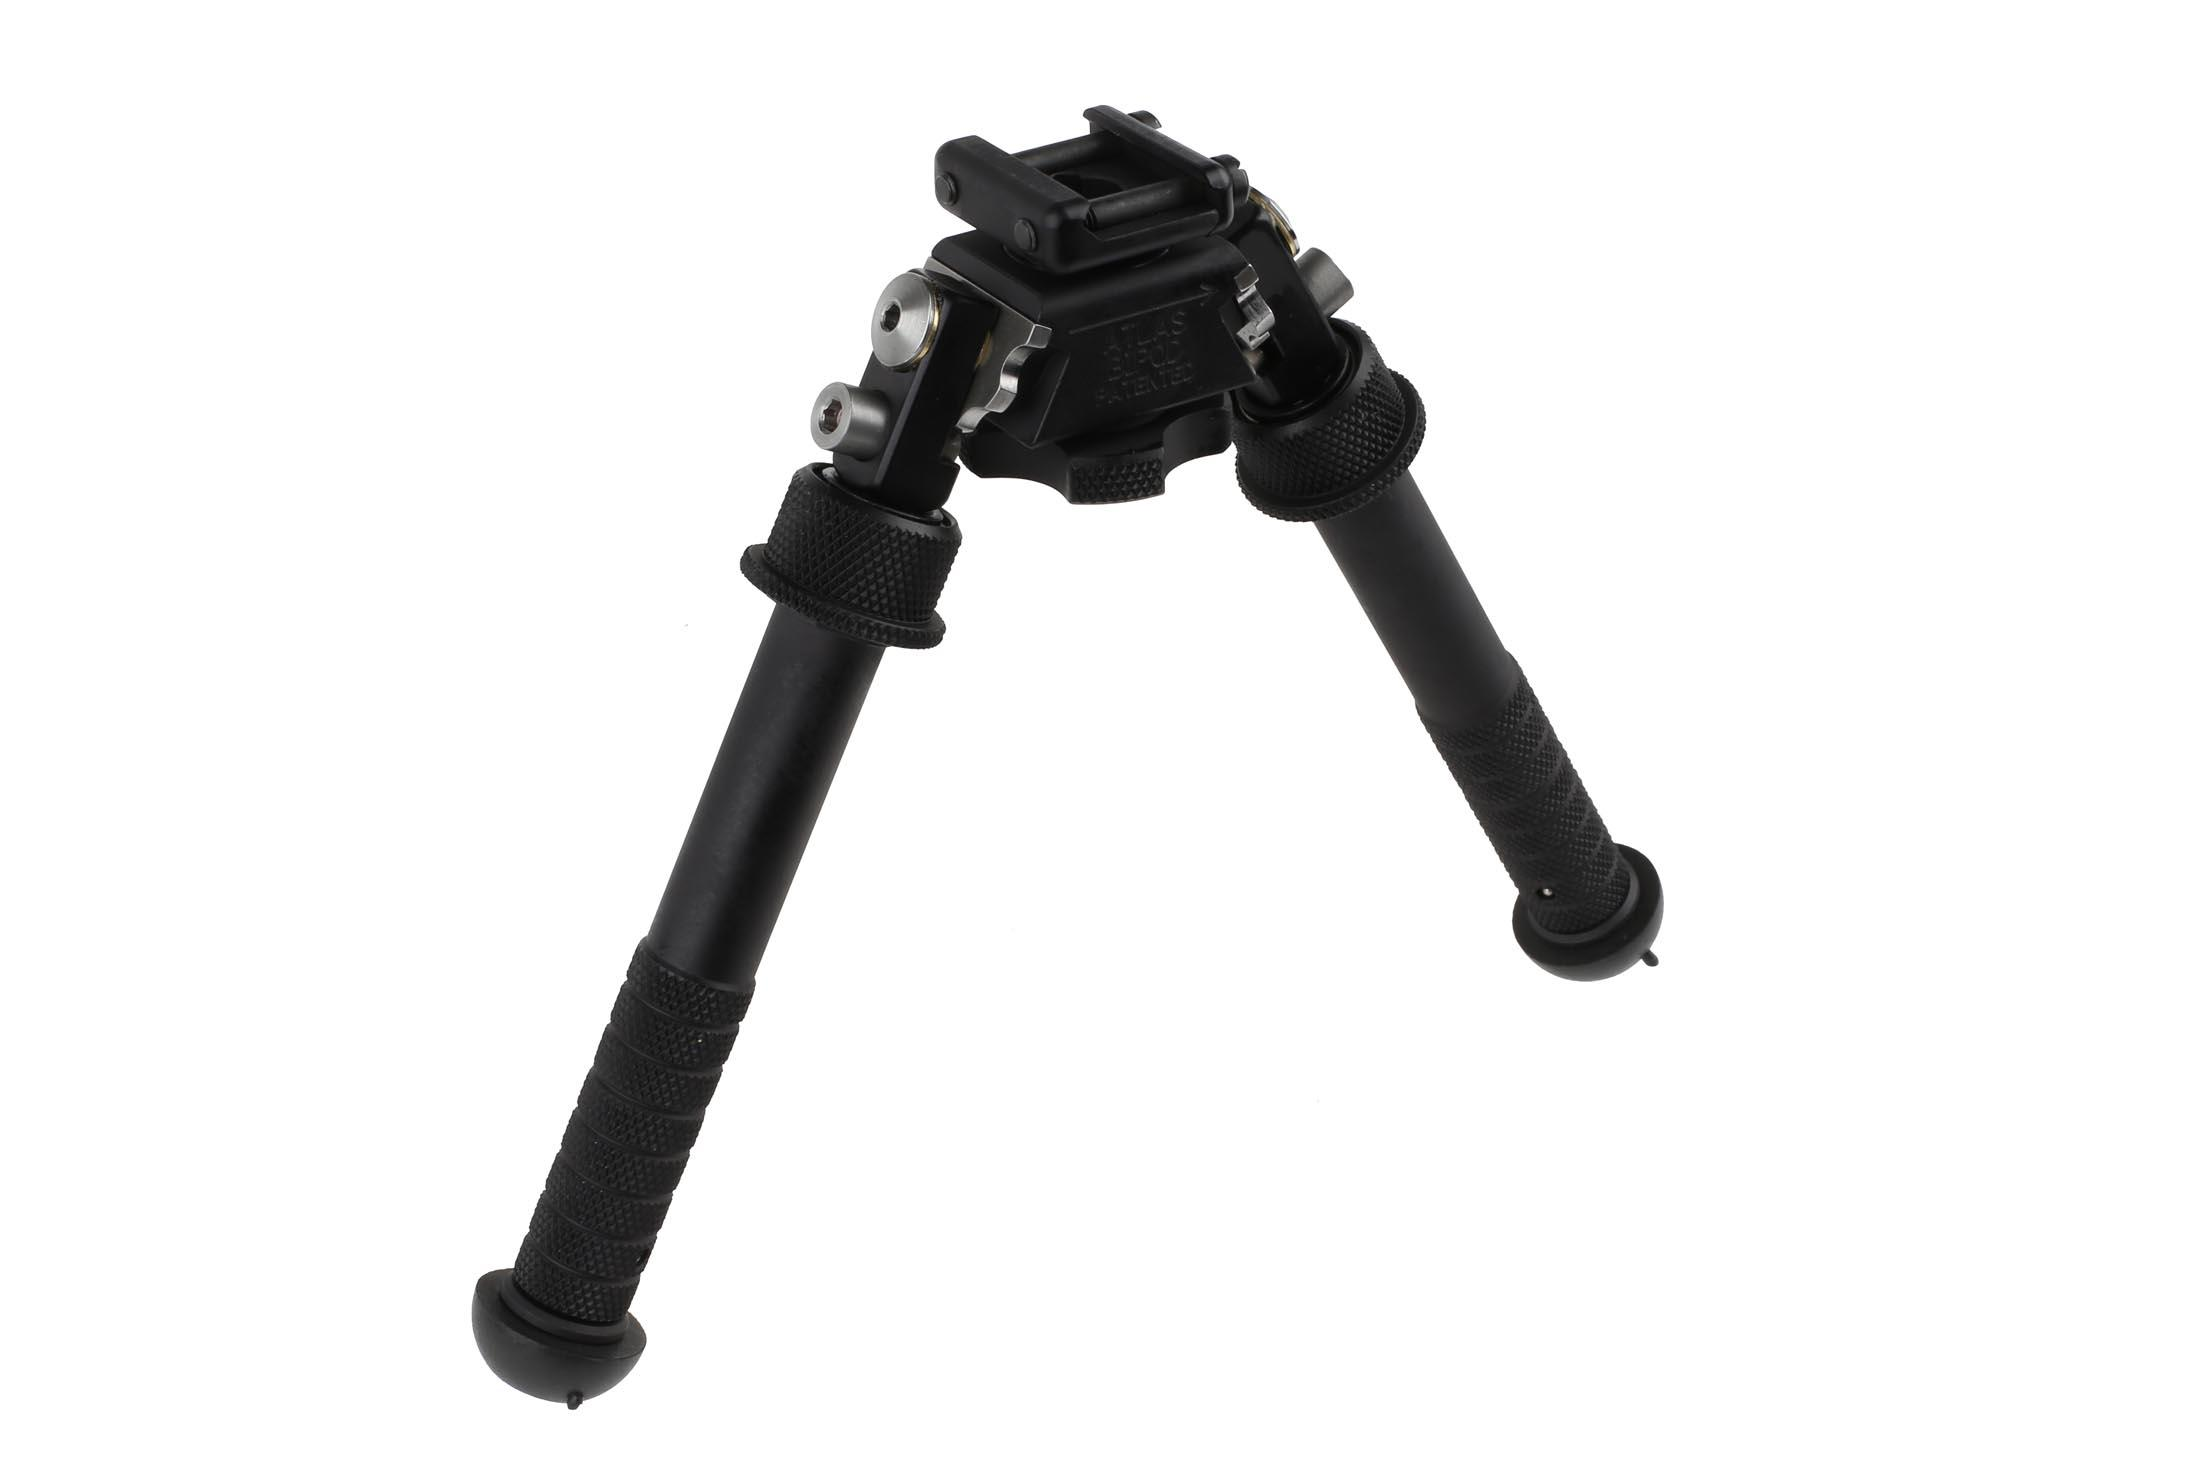 The Atlas Bipod V8 is highly adjustable for various terrain types